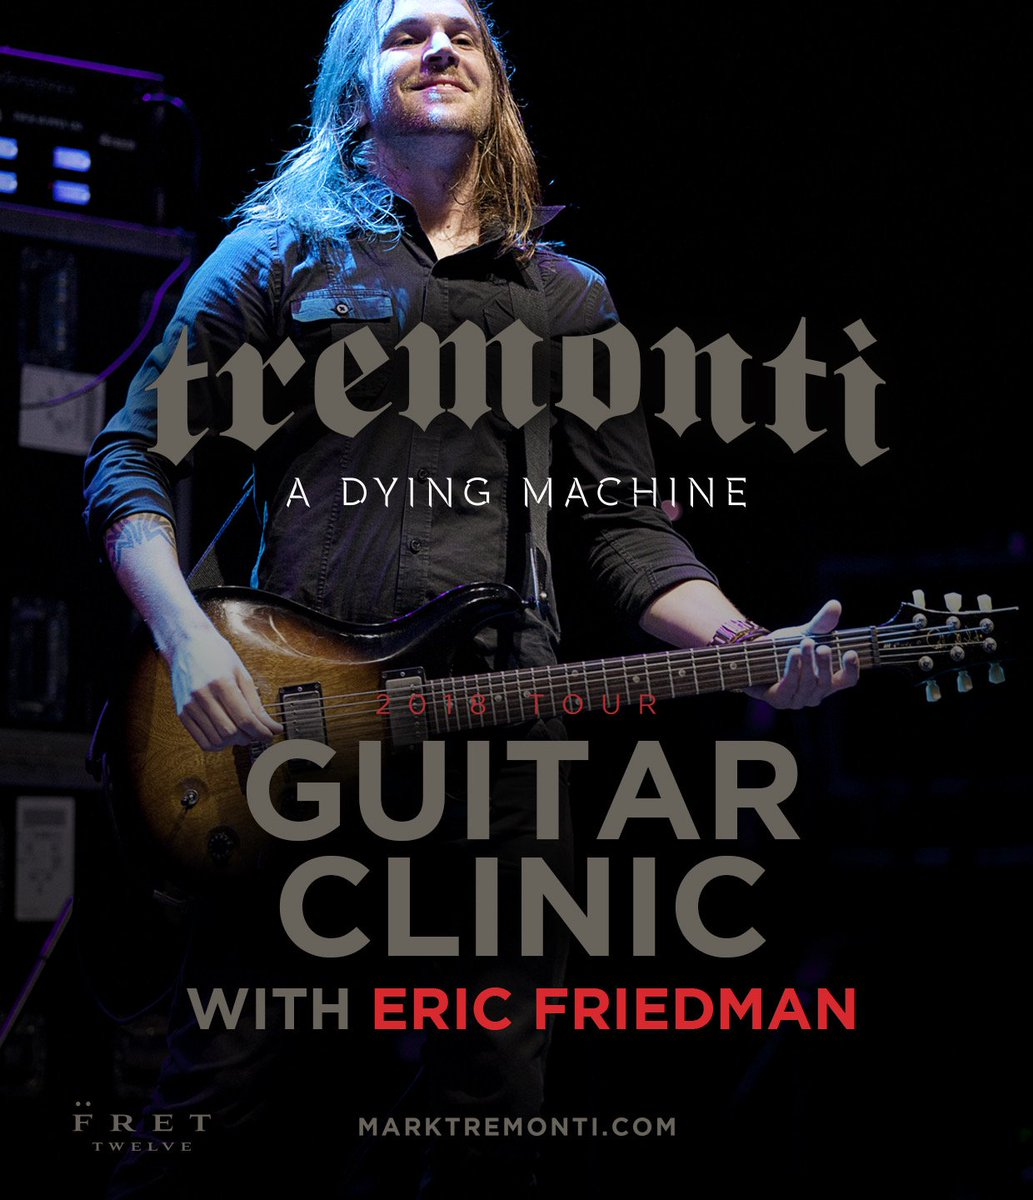 Tremonti On Twitter Europe Limited Meet And Greet Clinics